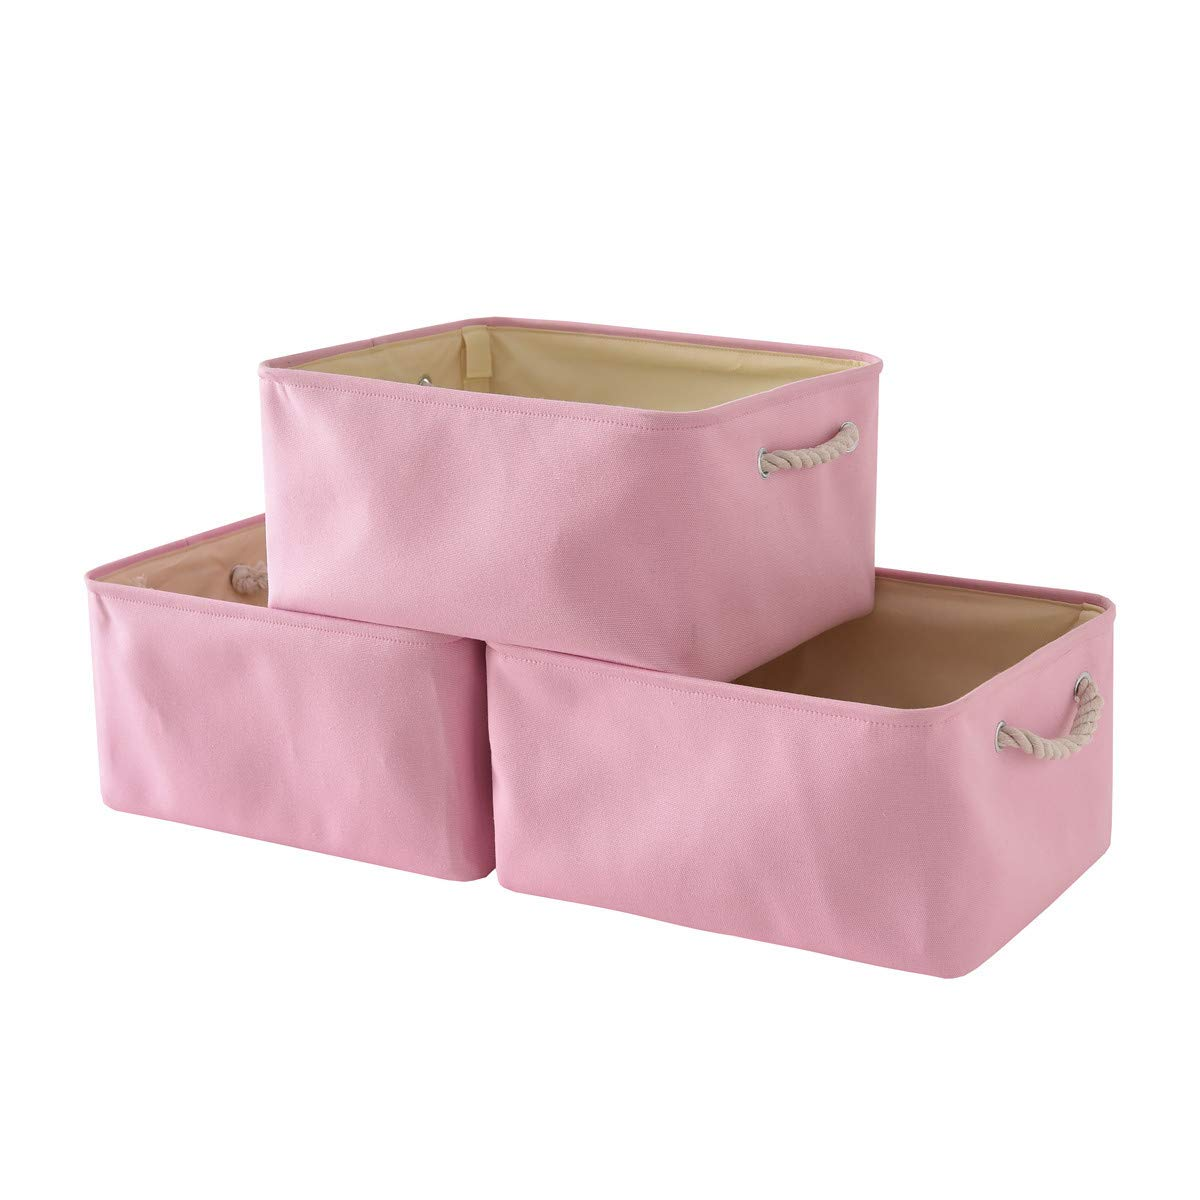 TheWarmHome Storage Basket with Sturdy Rod, Collapsible Storage Bins Set Works As Baby Basket, Toy Storage, Nursery Baskets (Pink, 3 Pack) by TheWarmHome